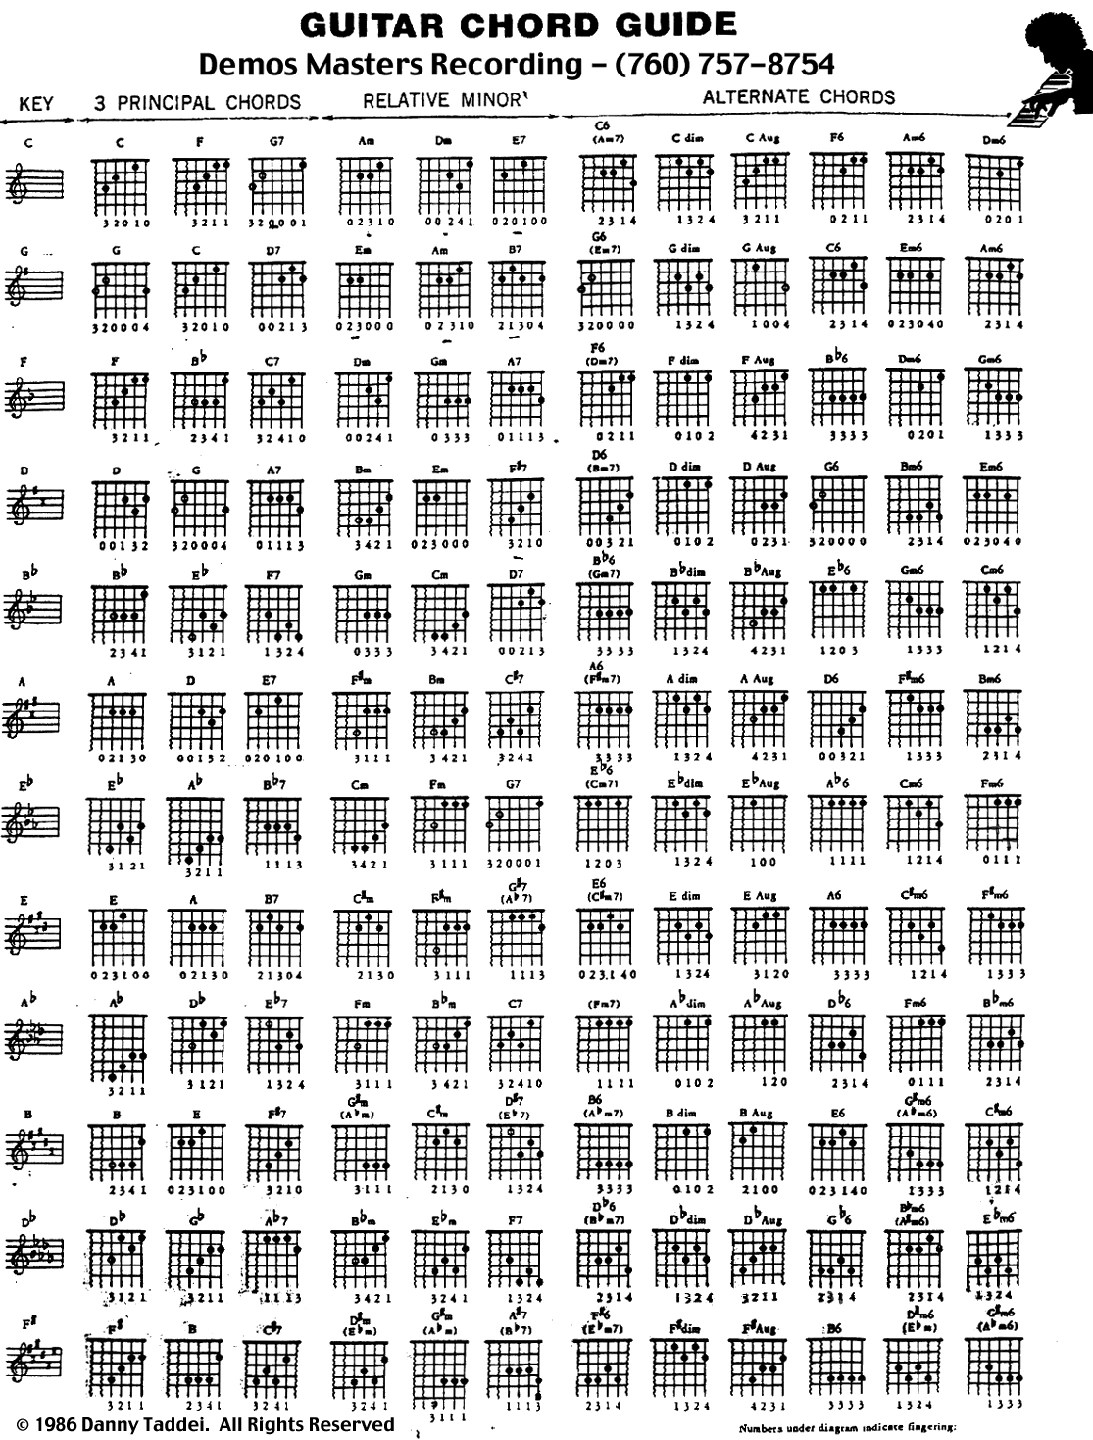 hight resolution of useful poster with chord charts assorted by key ideal for learning what chords are in each key and memorizing chord fingerings